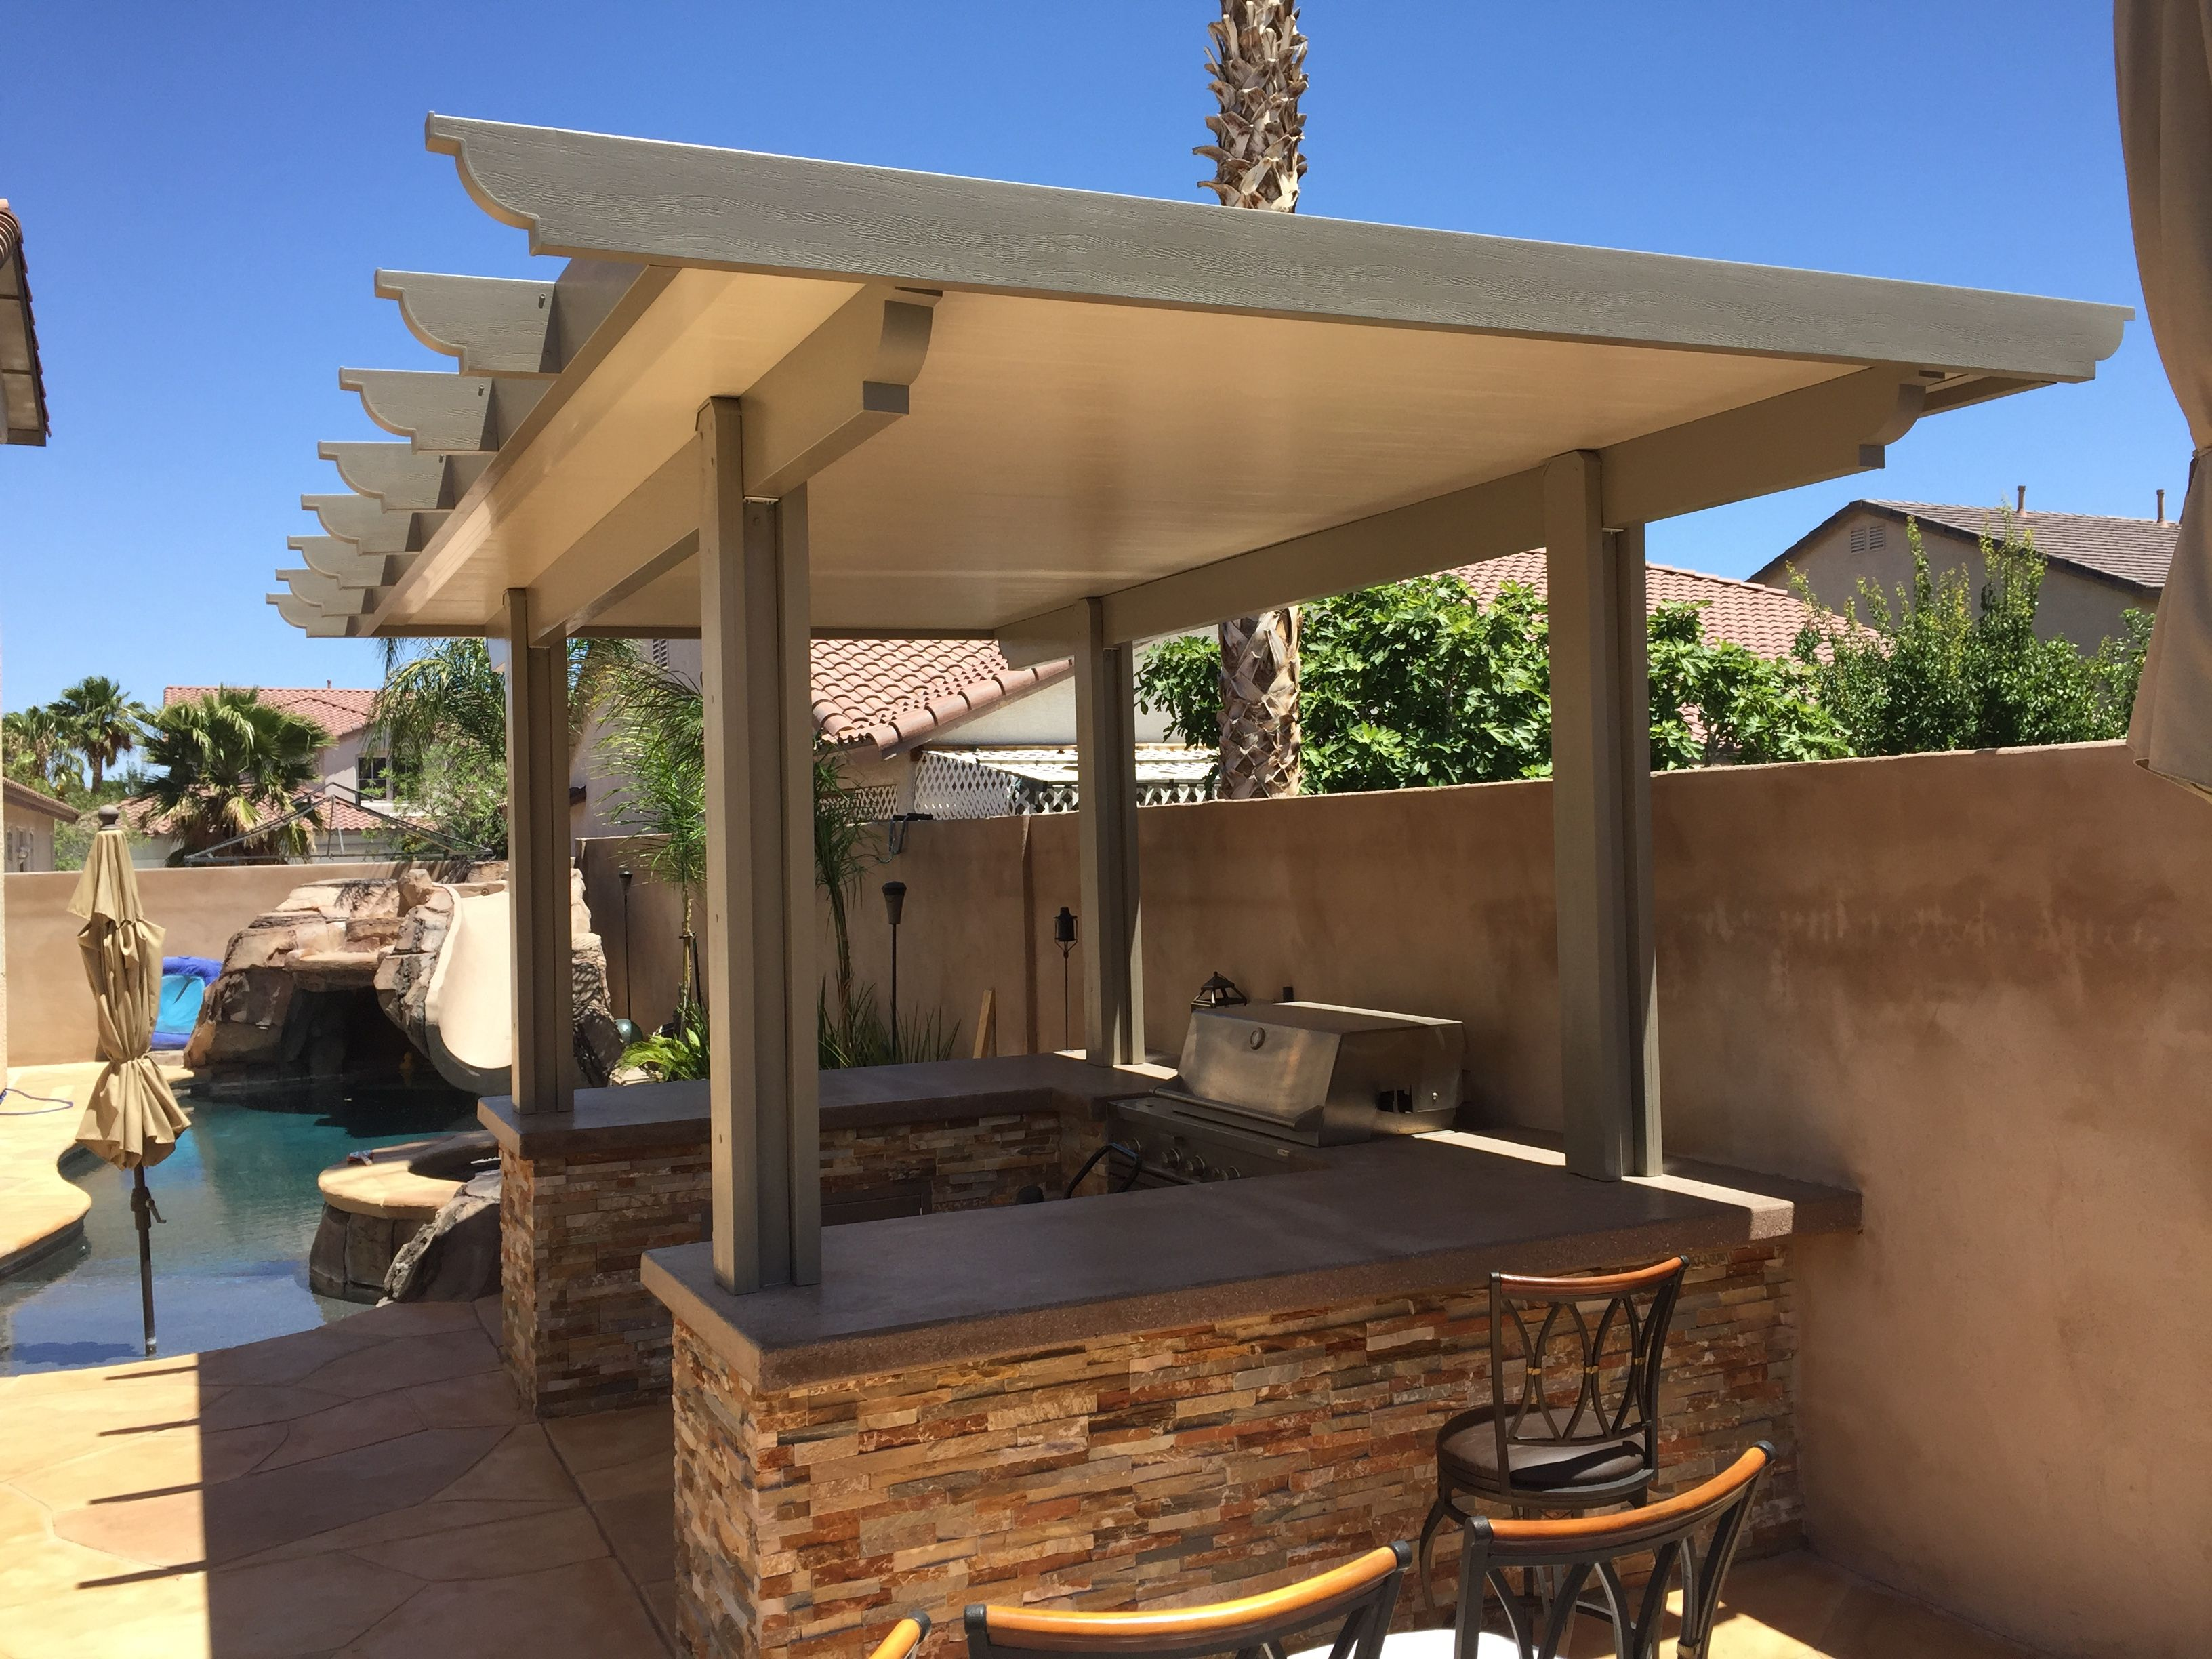 Alumawood Patio Cover Diy Kits Beaumont House Diy Patio Cover